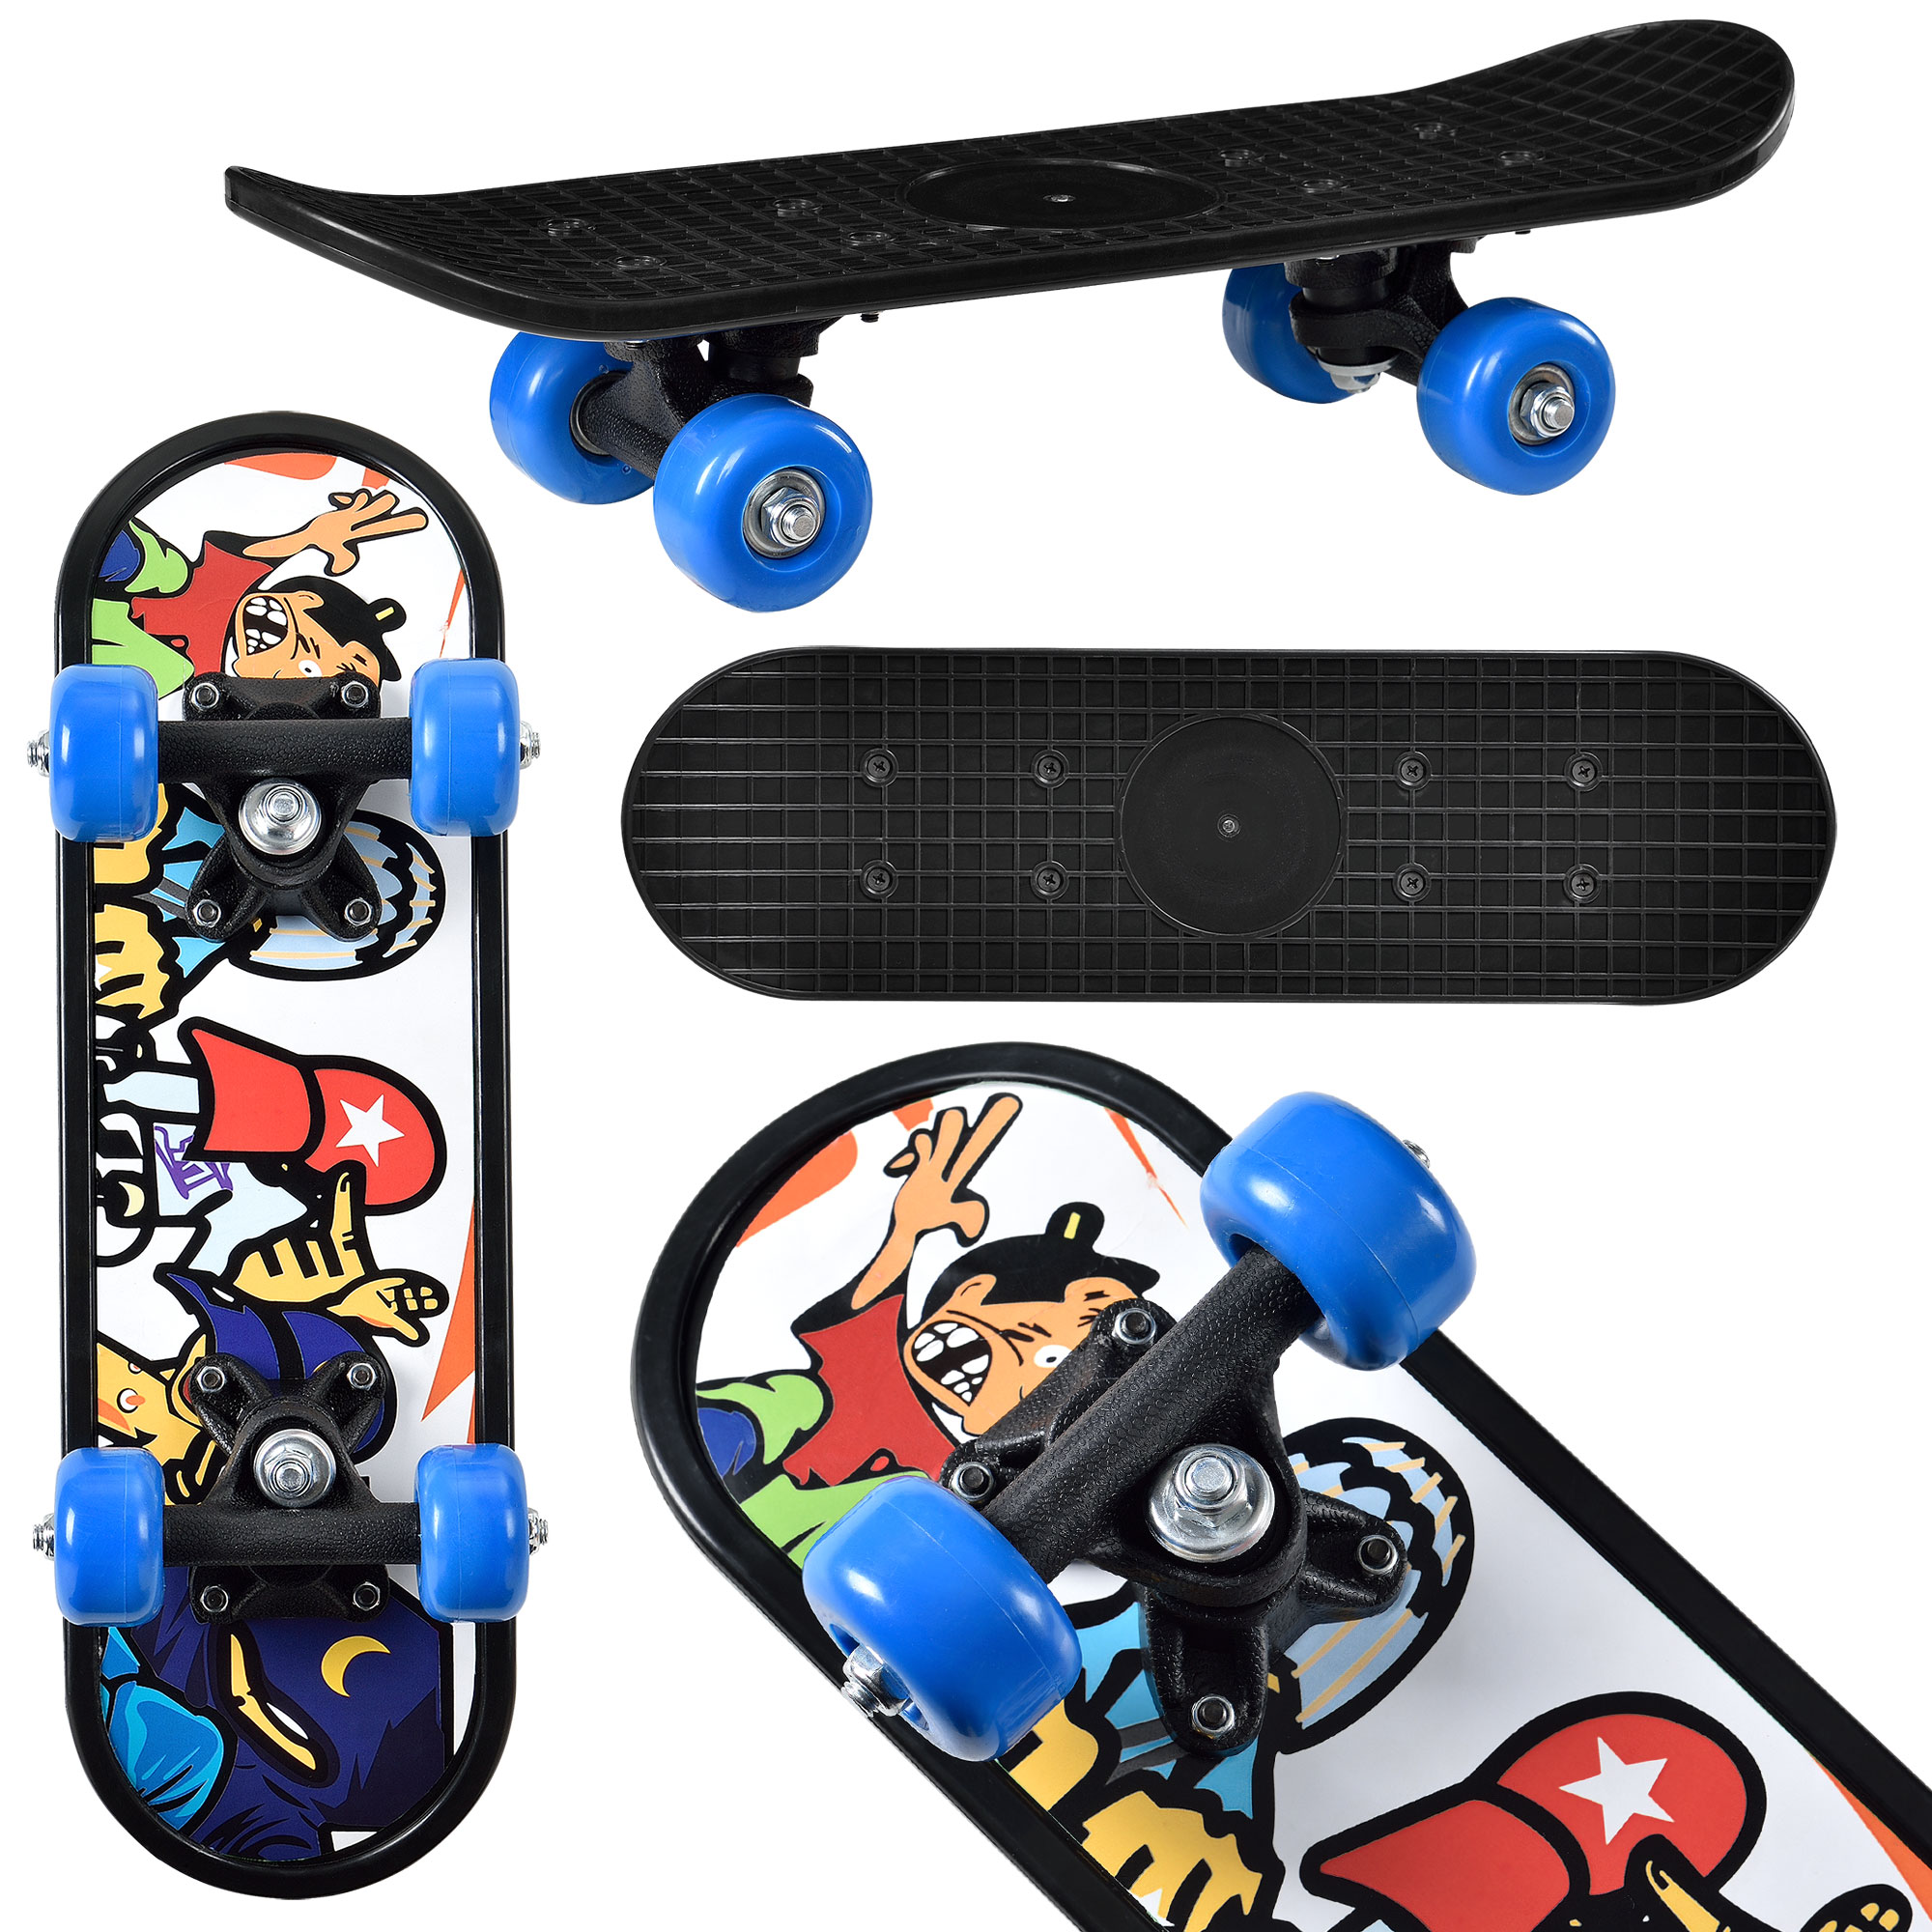 [pro.tec]® Skateboard mini - retro board ABEC 7